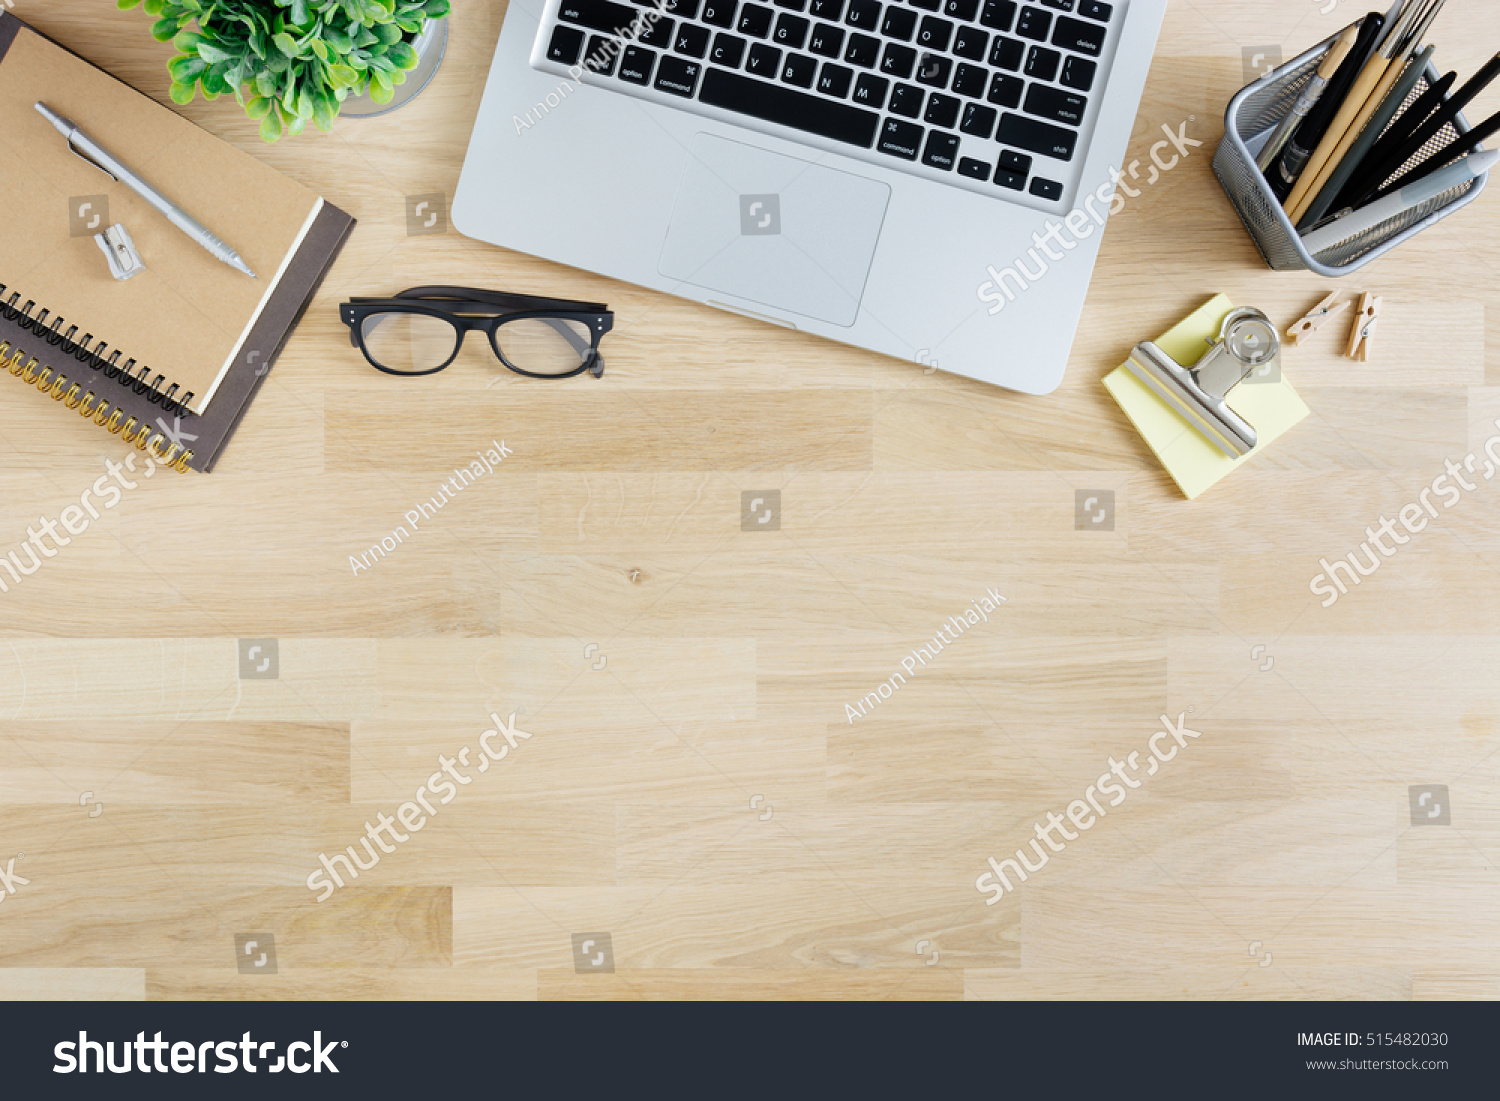 Office Desk Table Laptop Supplies Tablet Stock Photo ...